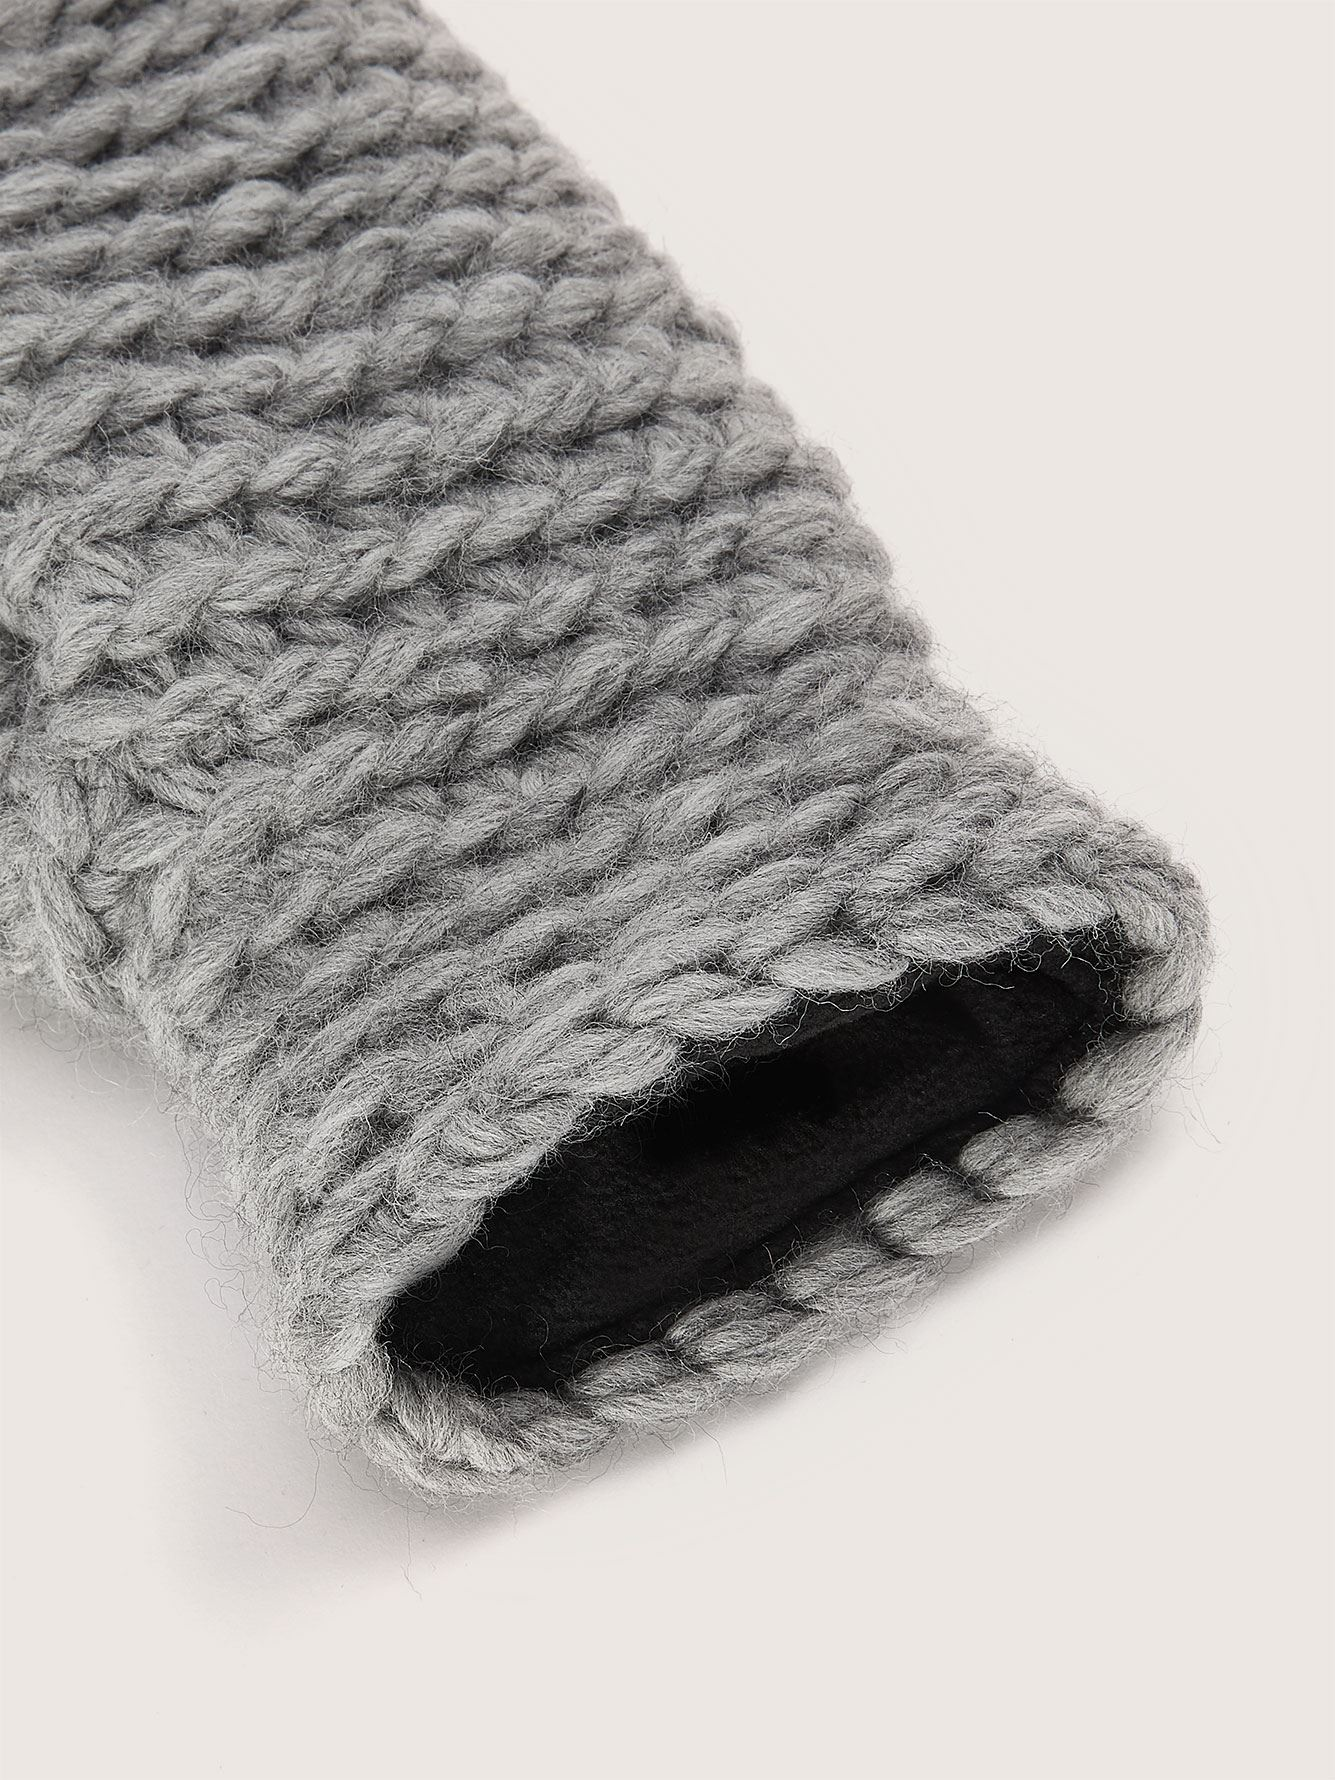 Hand-Knitted Wool Mittens - Gibou